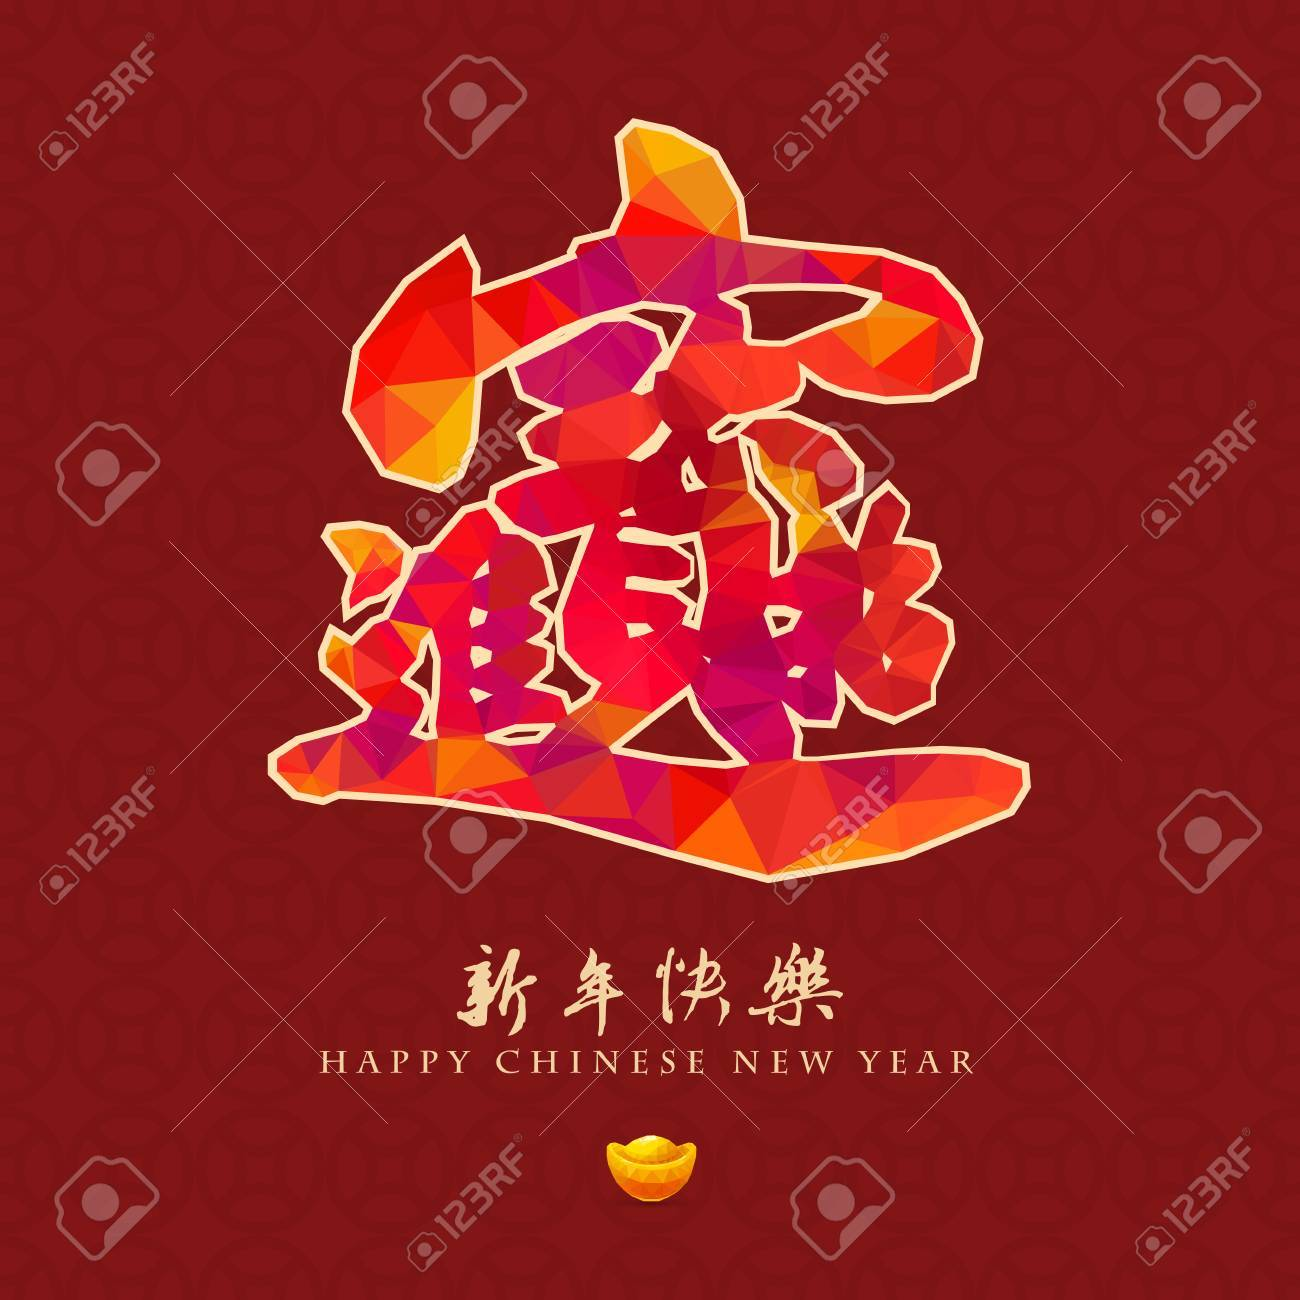 Chinese New Year Traditional Symbols Money And Treasures Will Be